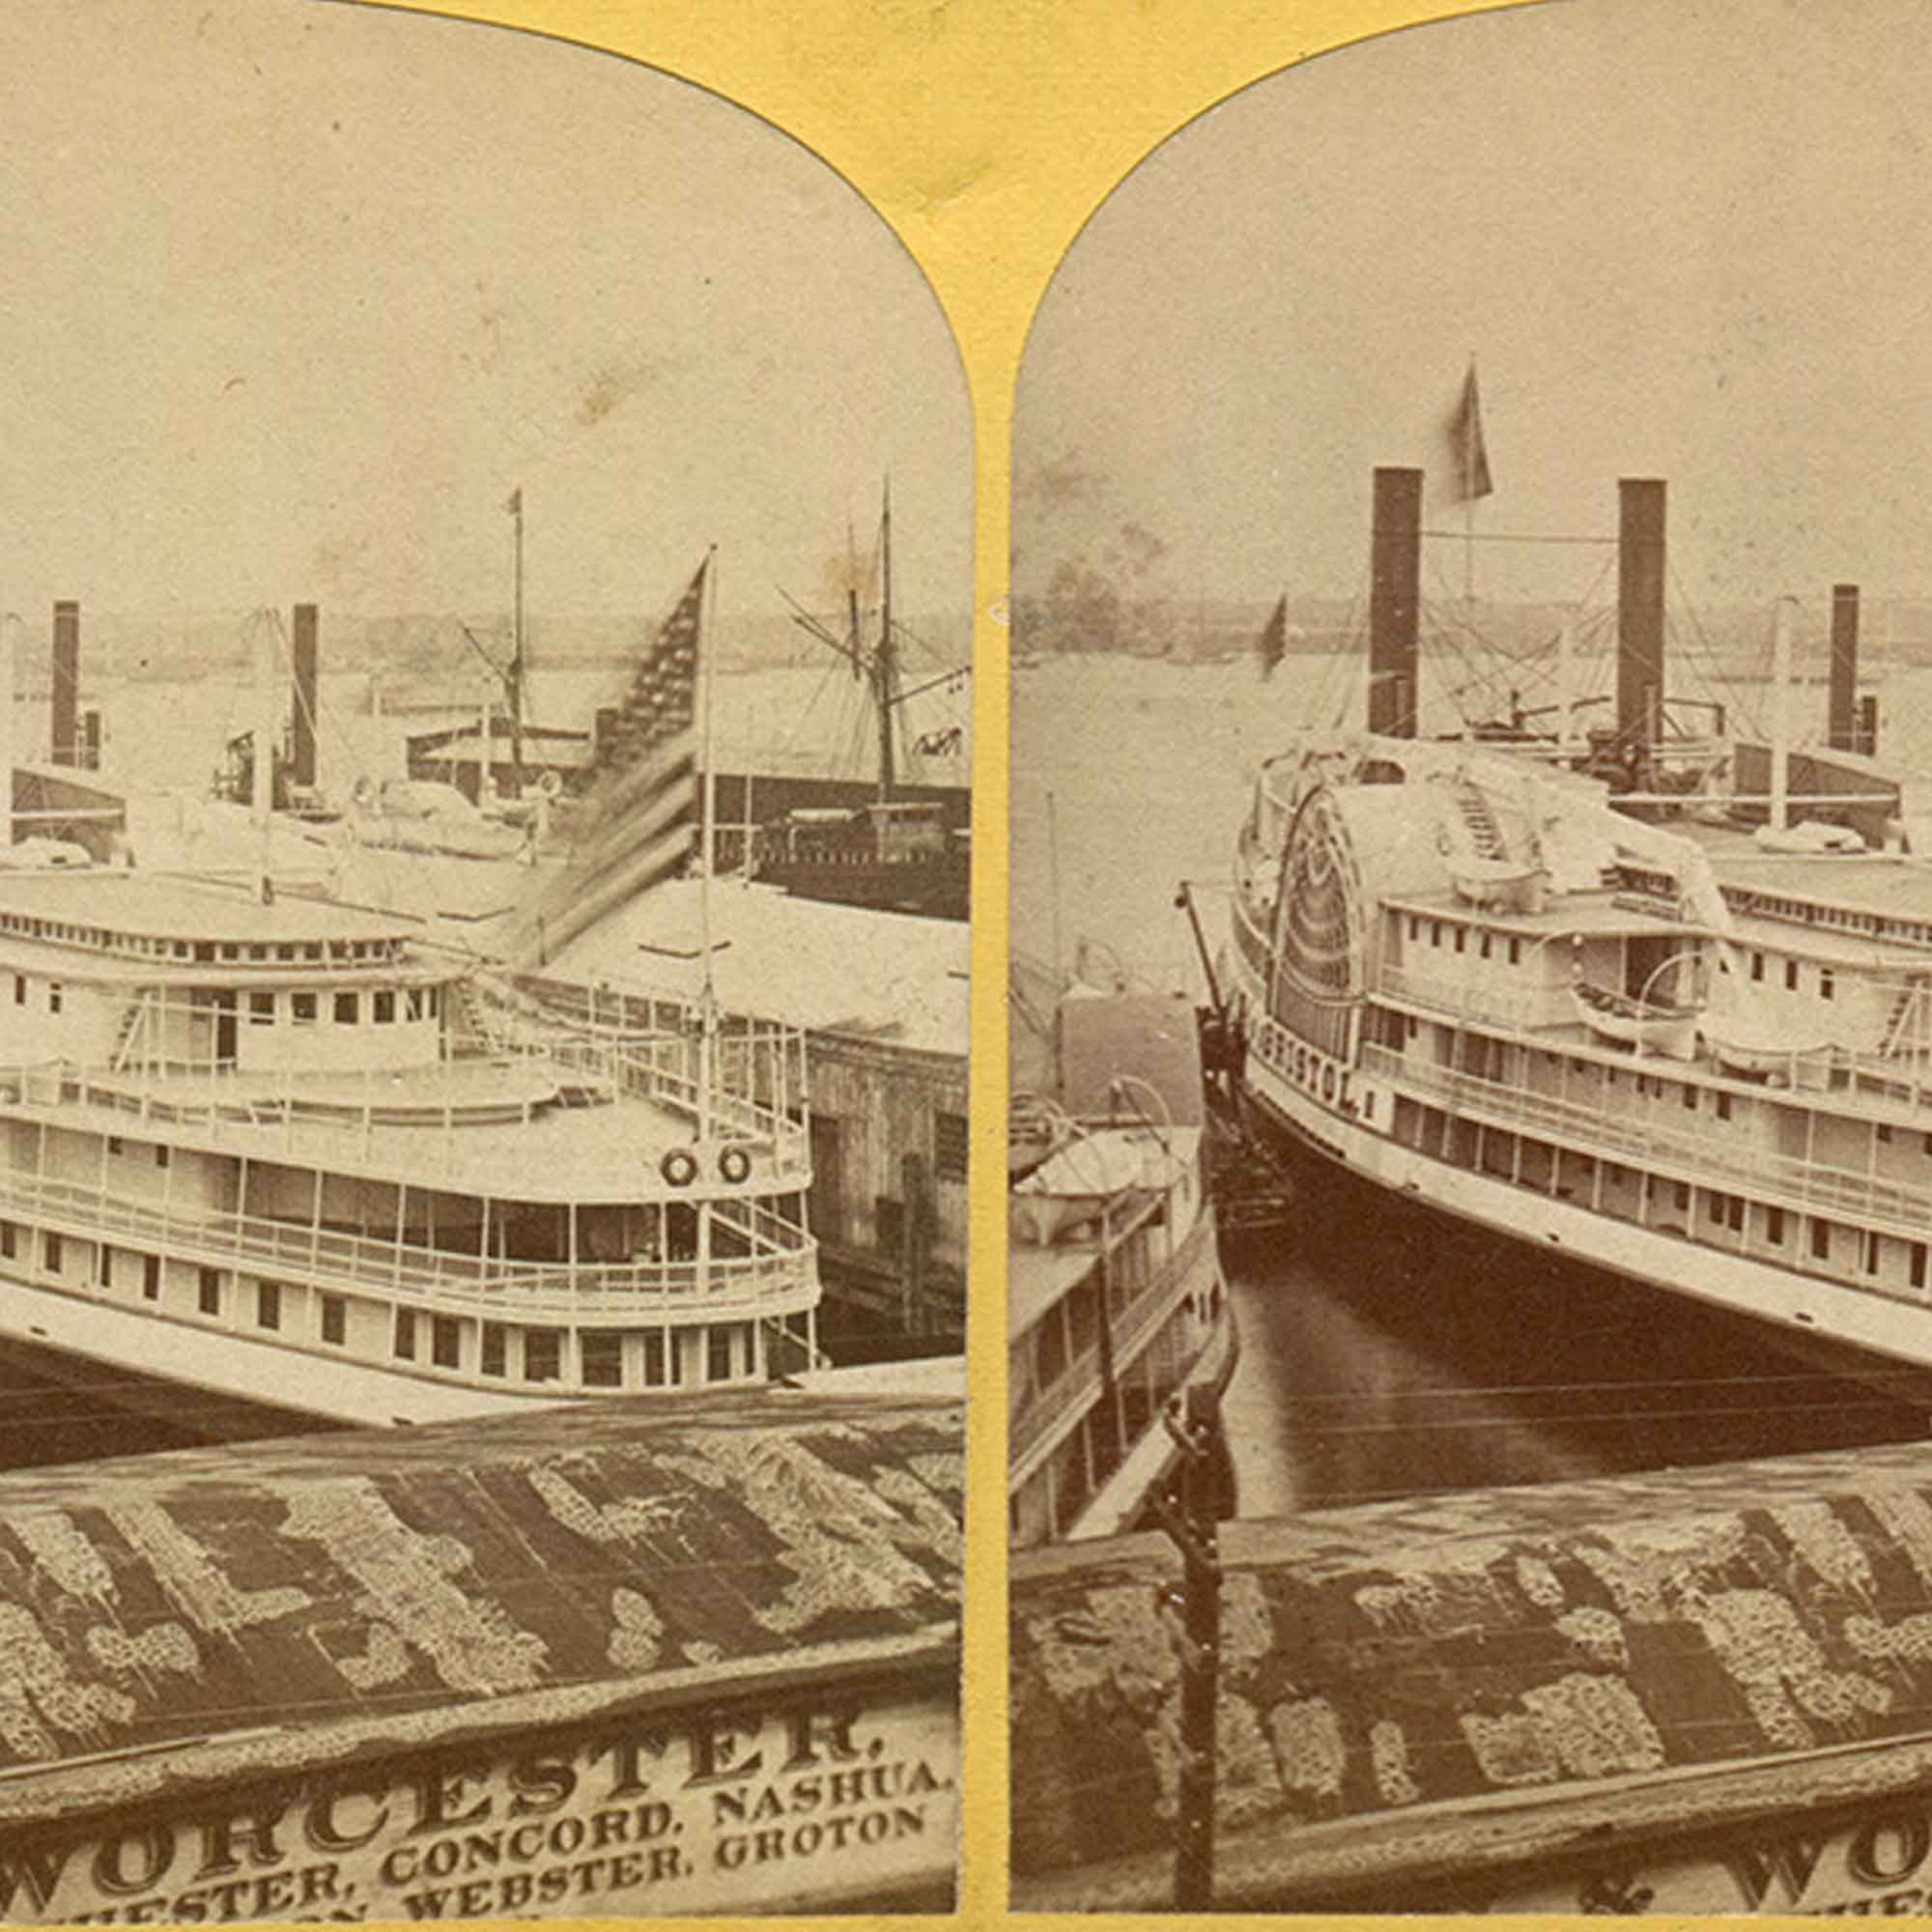 Rhode Island Stereocard Collection thumbnail